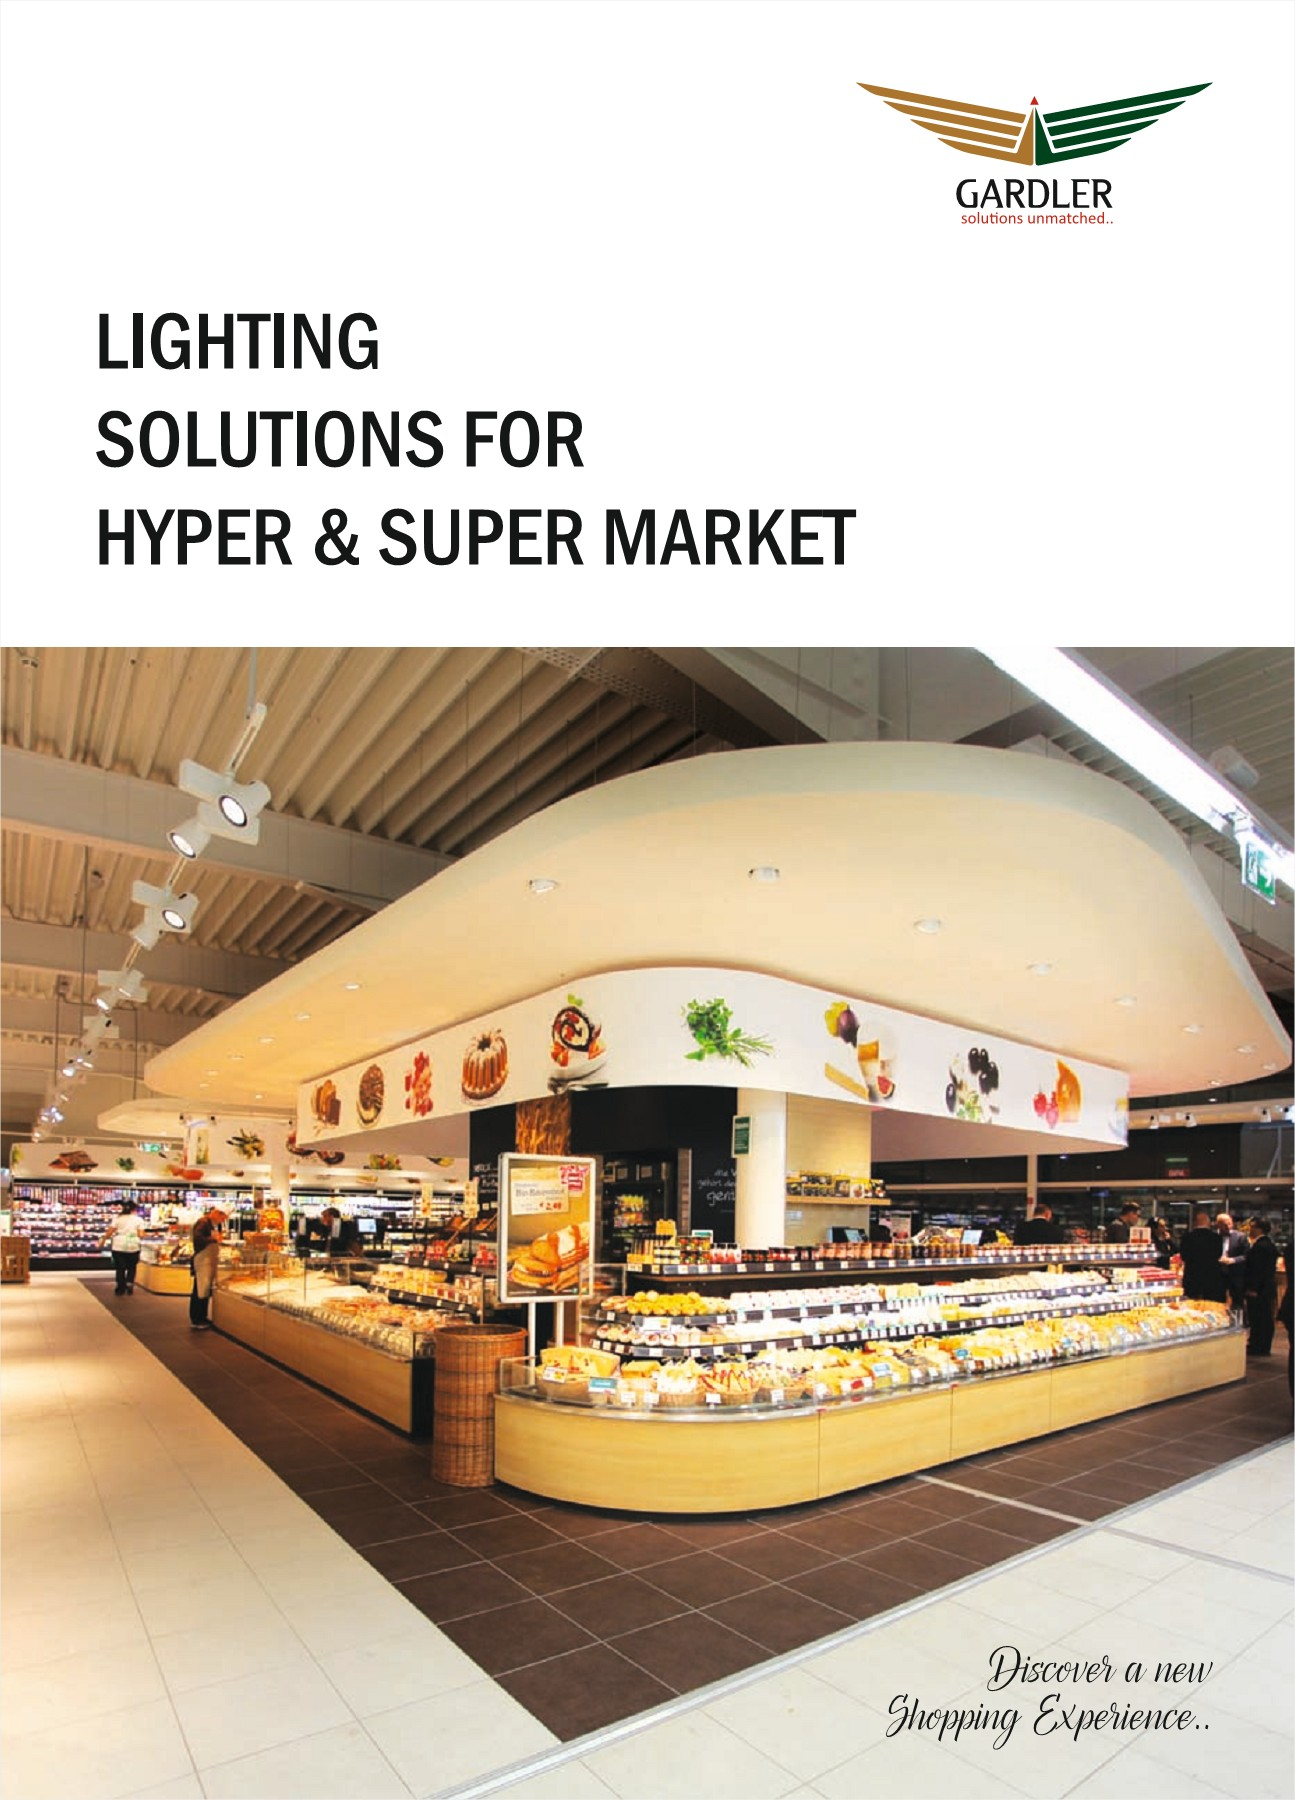 Brilliant solution for hypermarkets